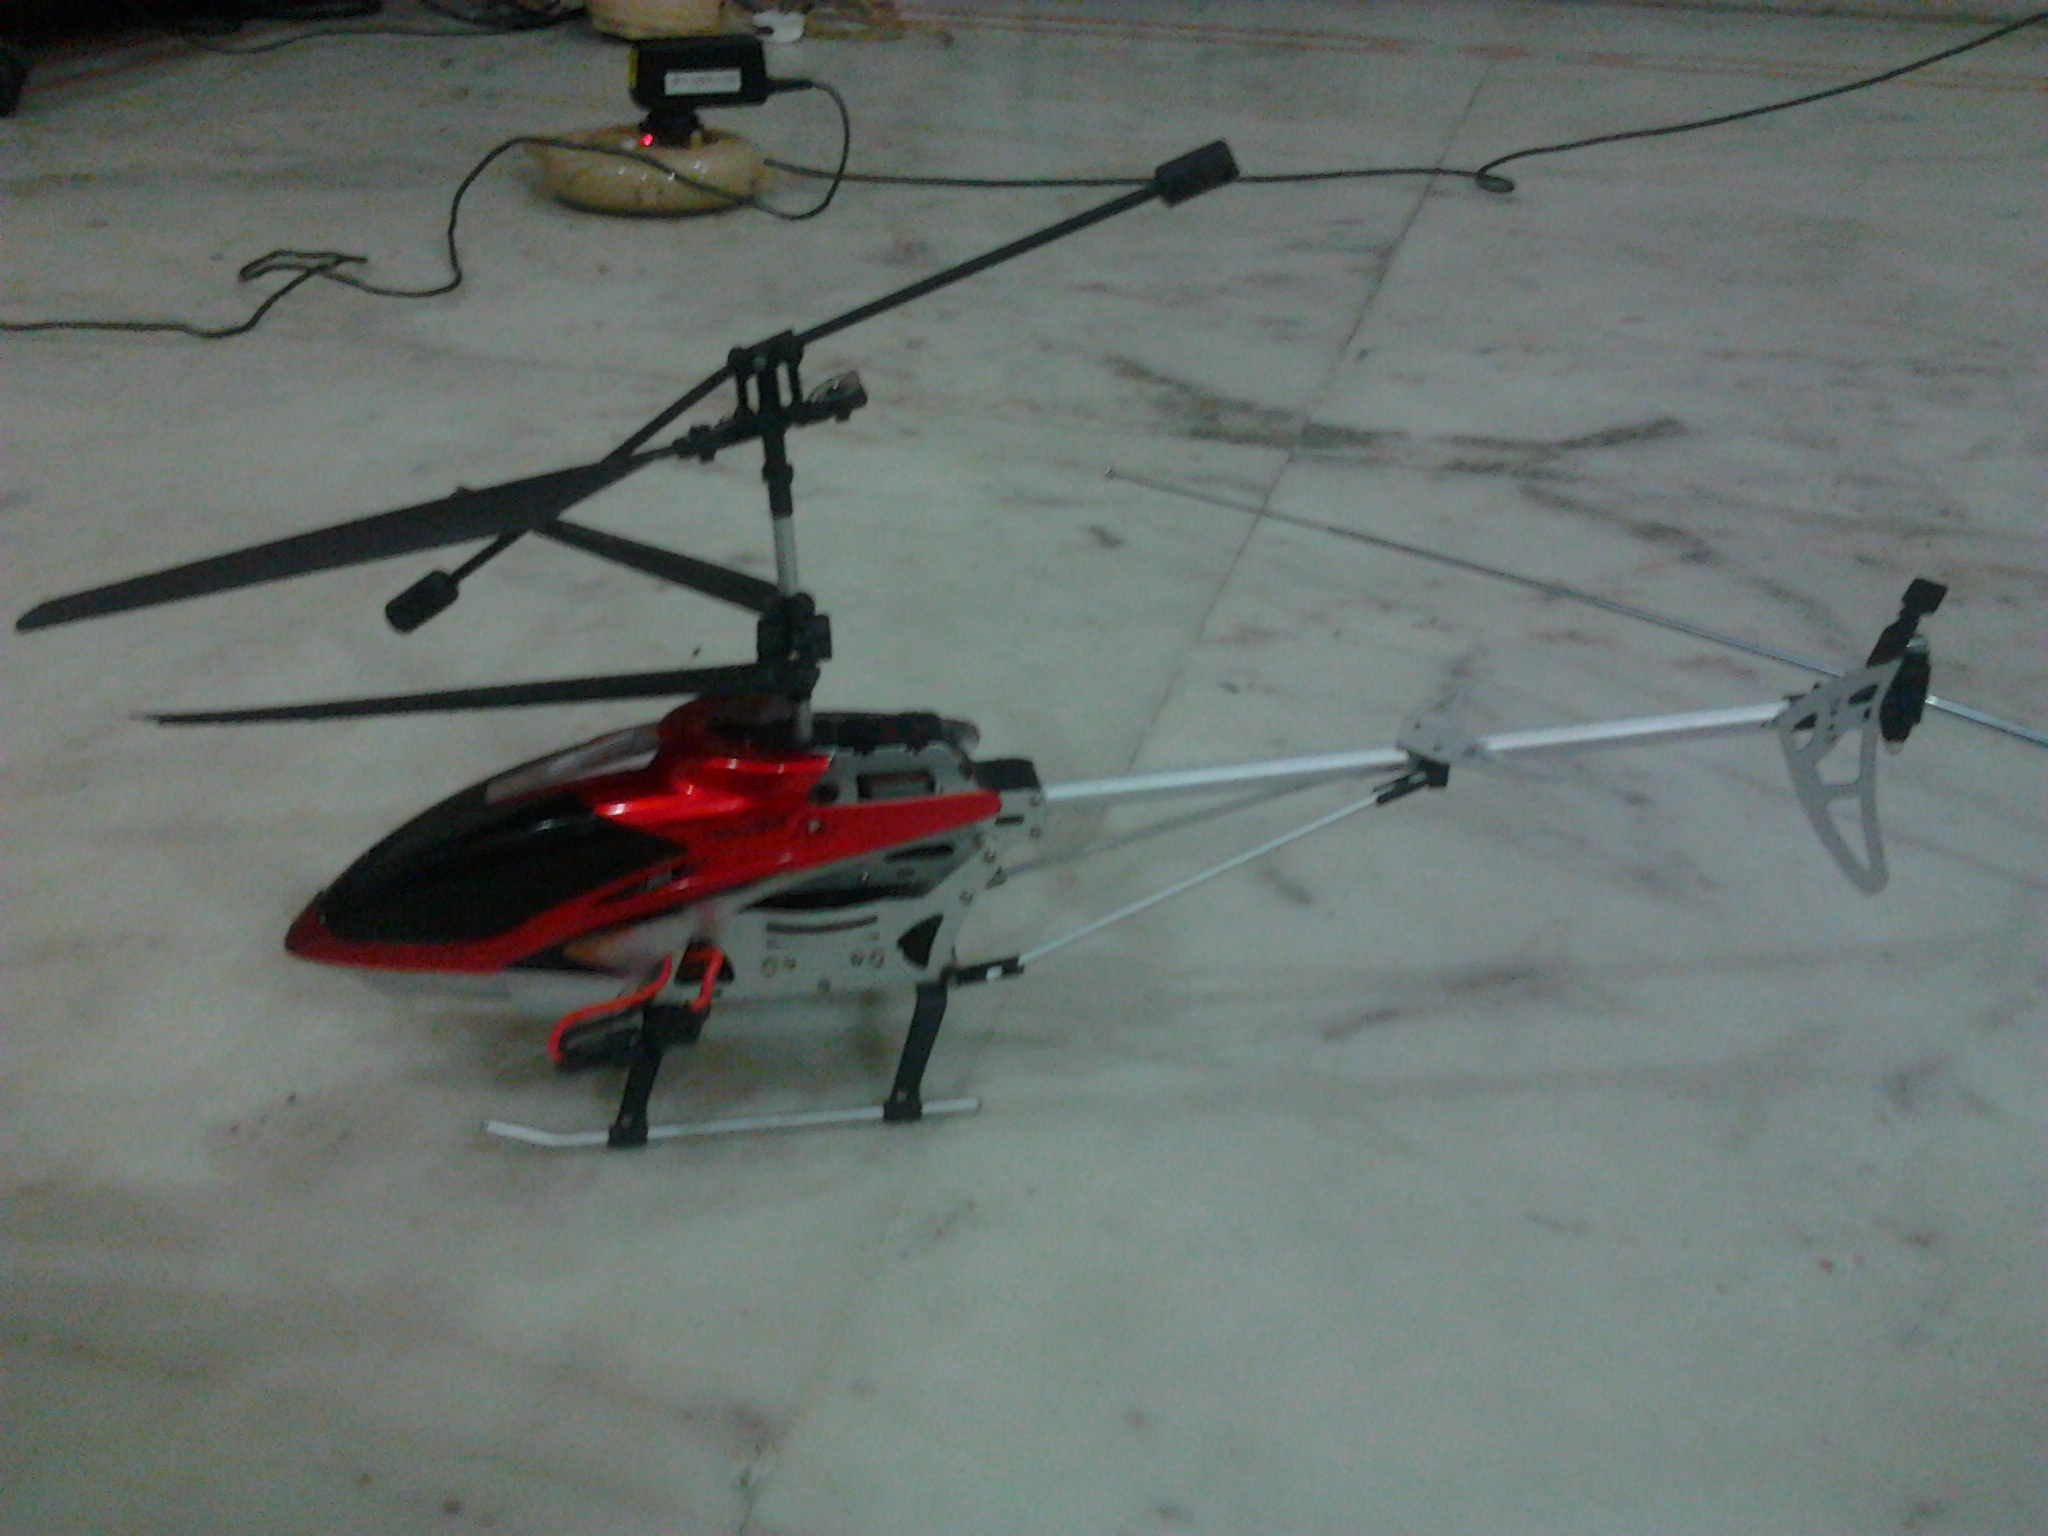 Spy-copter